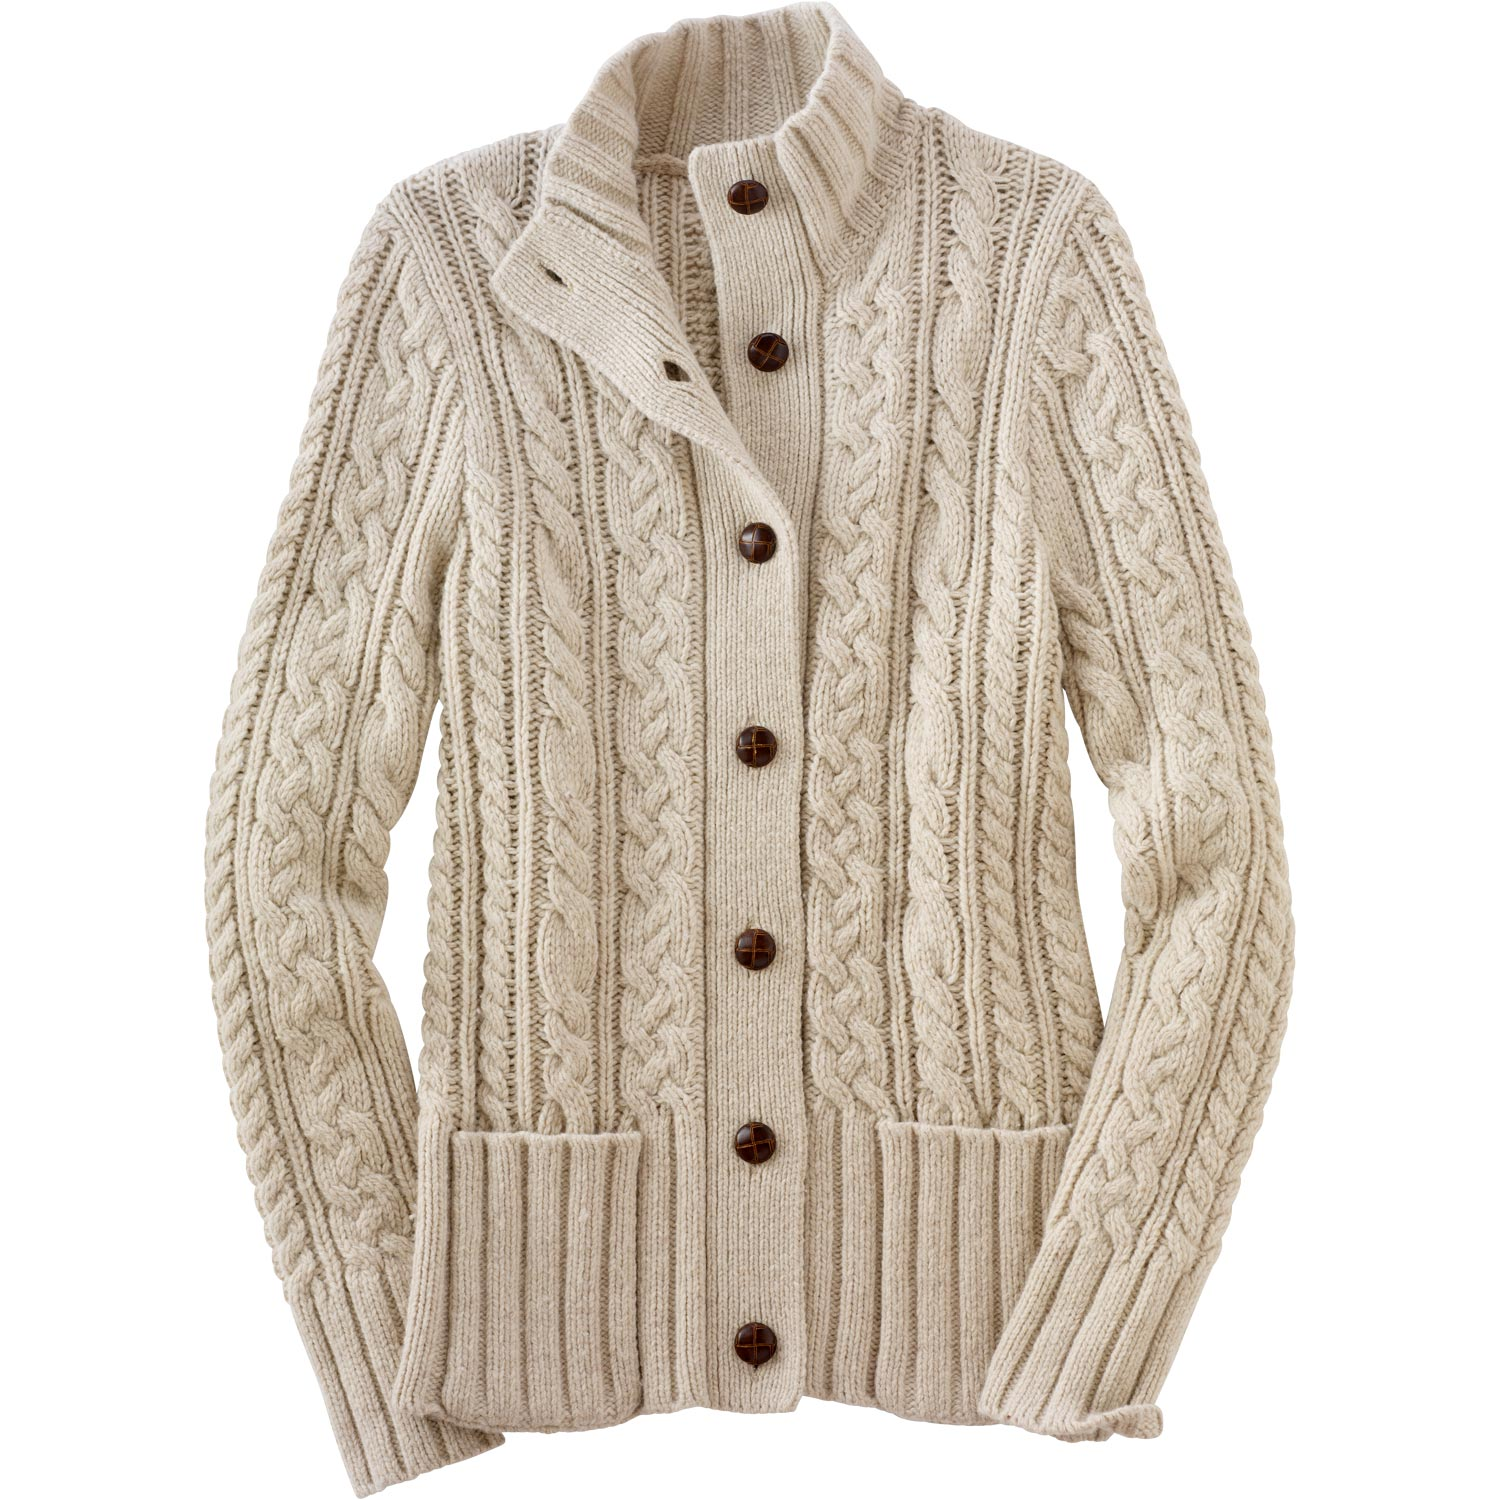 sweater cardigan product image ... RYOWBKD